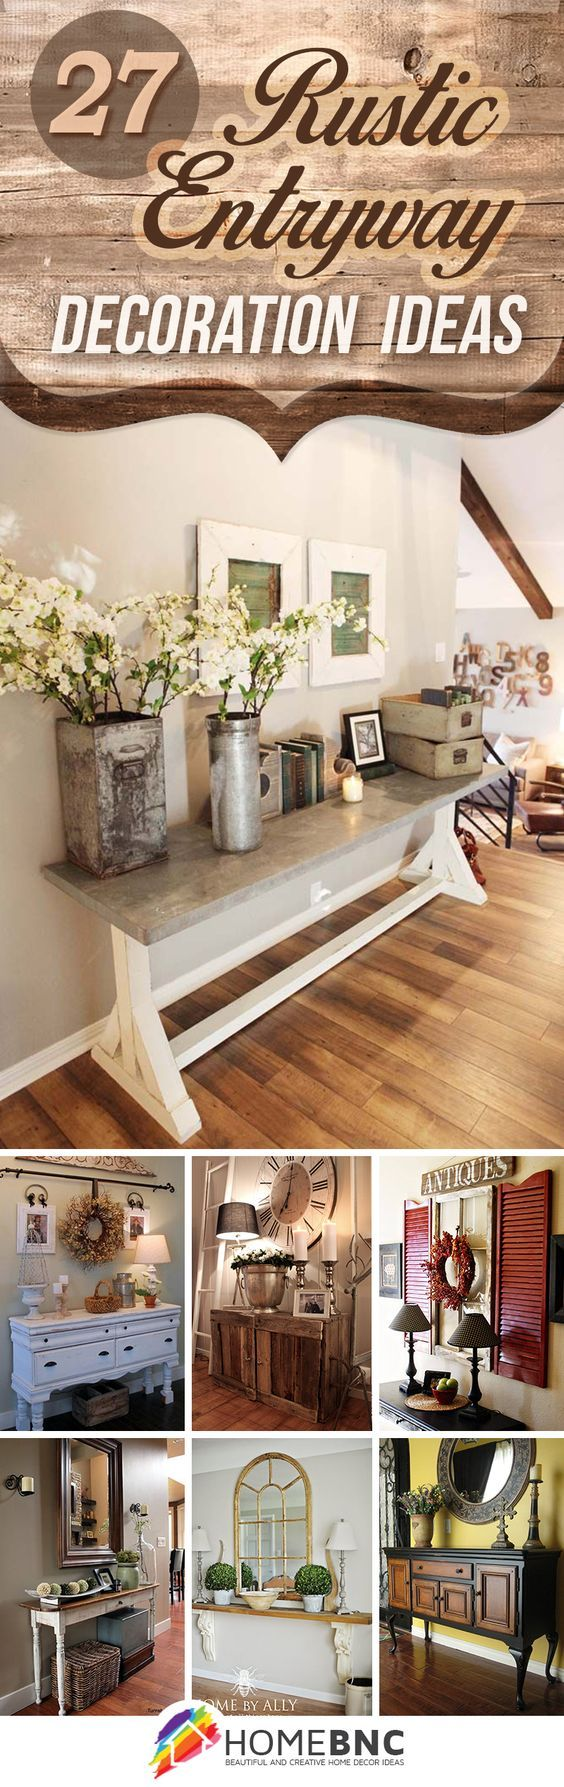 best 20 rustic entryway ideas on pinterest - Home Rustic Decor